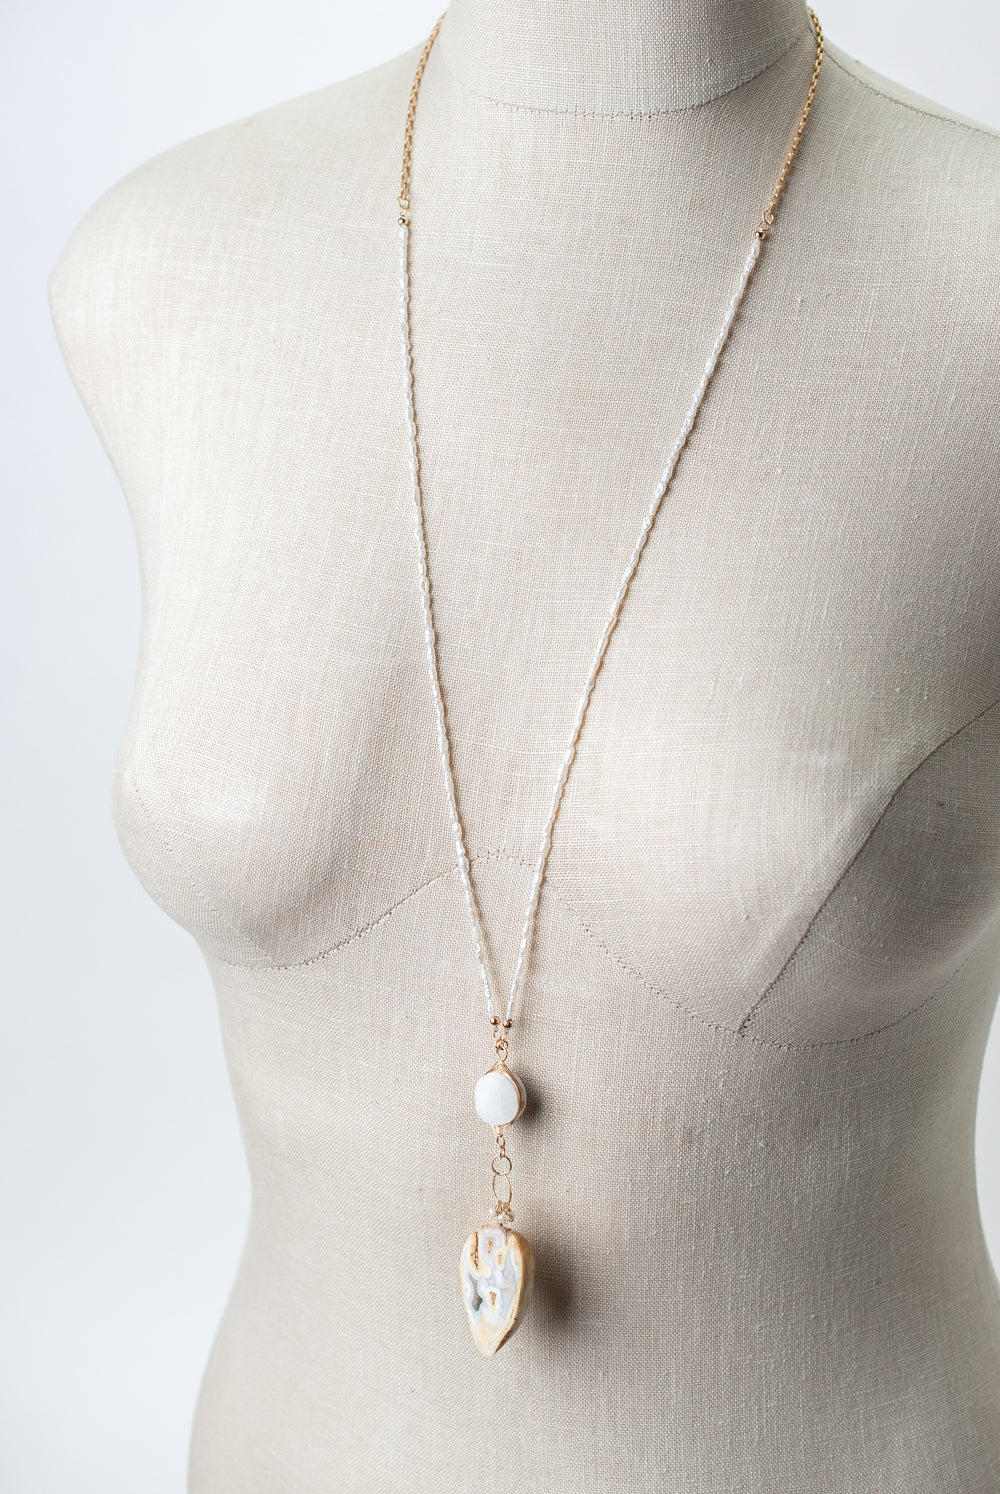 "One of a Kind 31-33"" Fresh Water Pearl, Druzy, Fossilized Shell Focal Necklace"